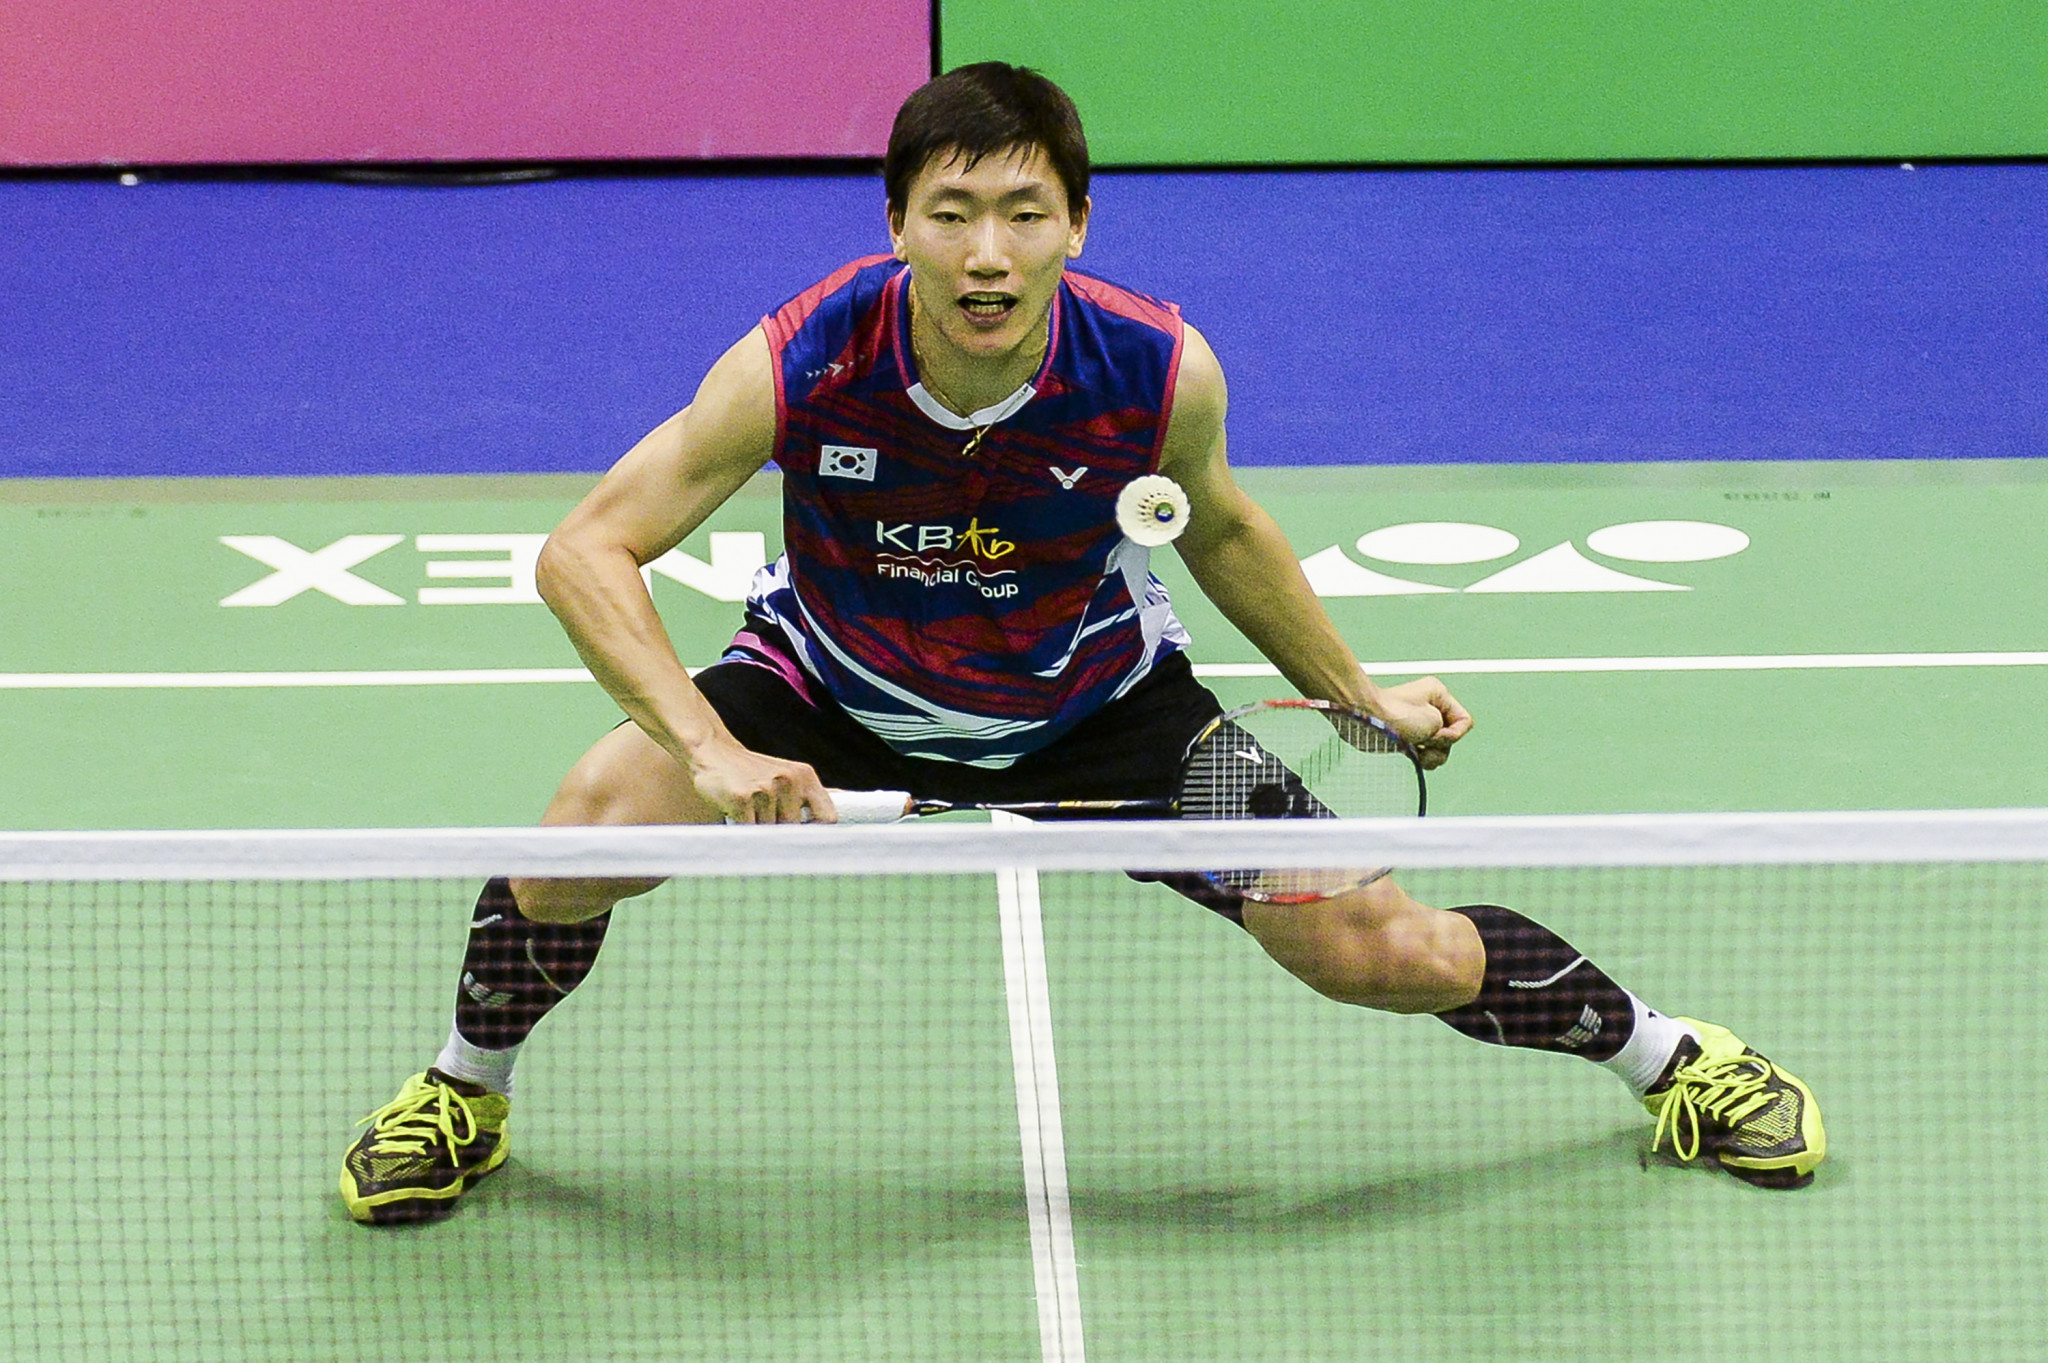 Lee Dong Keun came from behind to win the men's singles event ©Getty Images